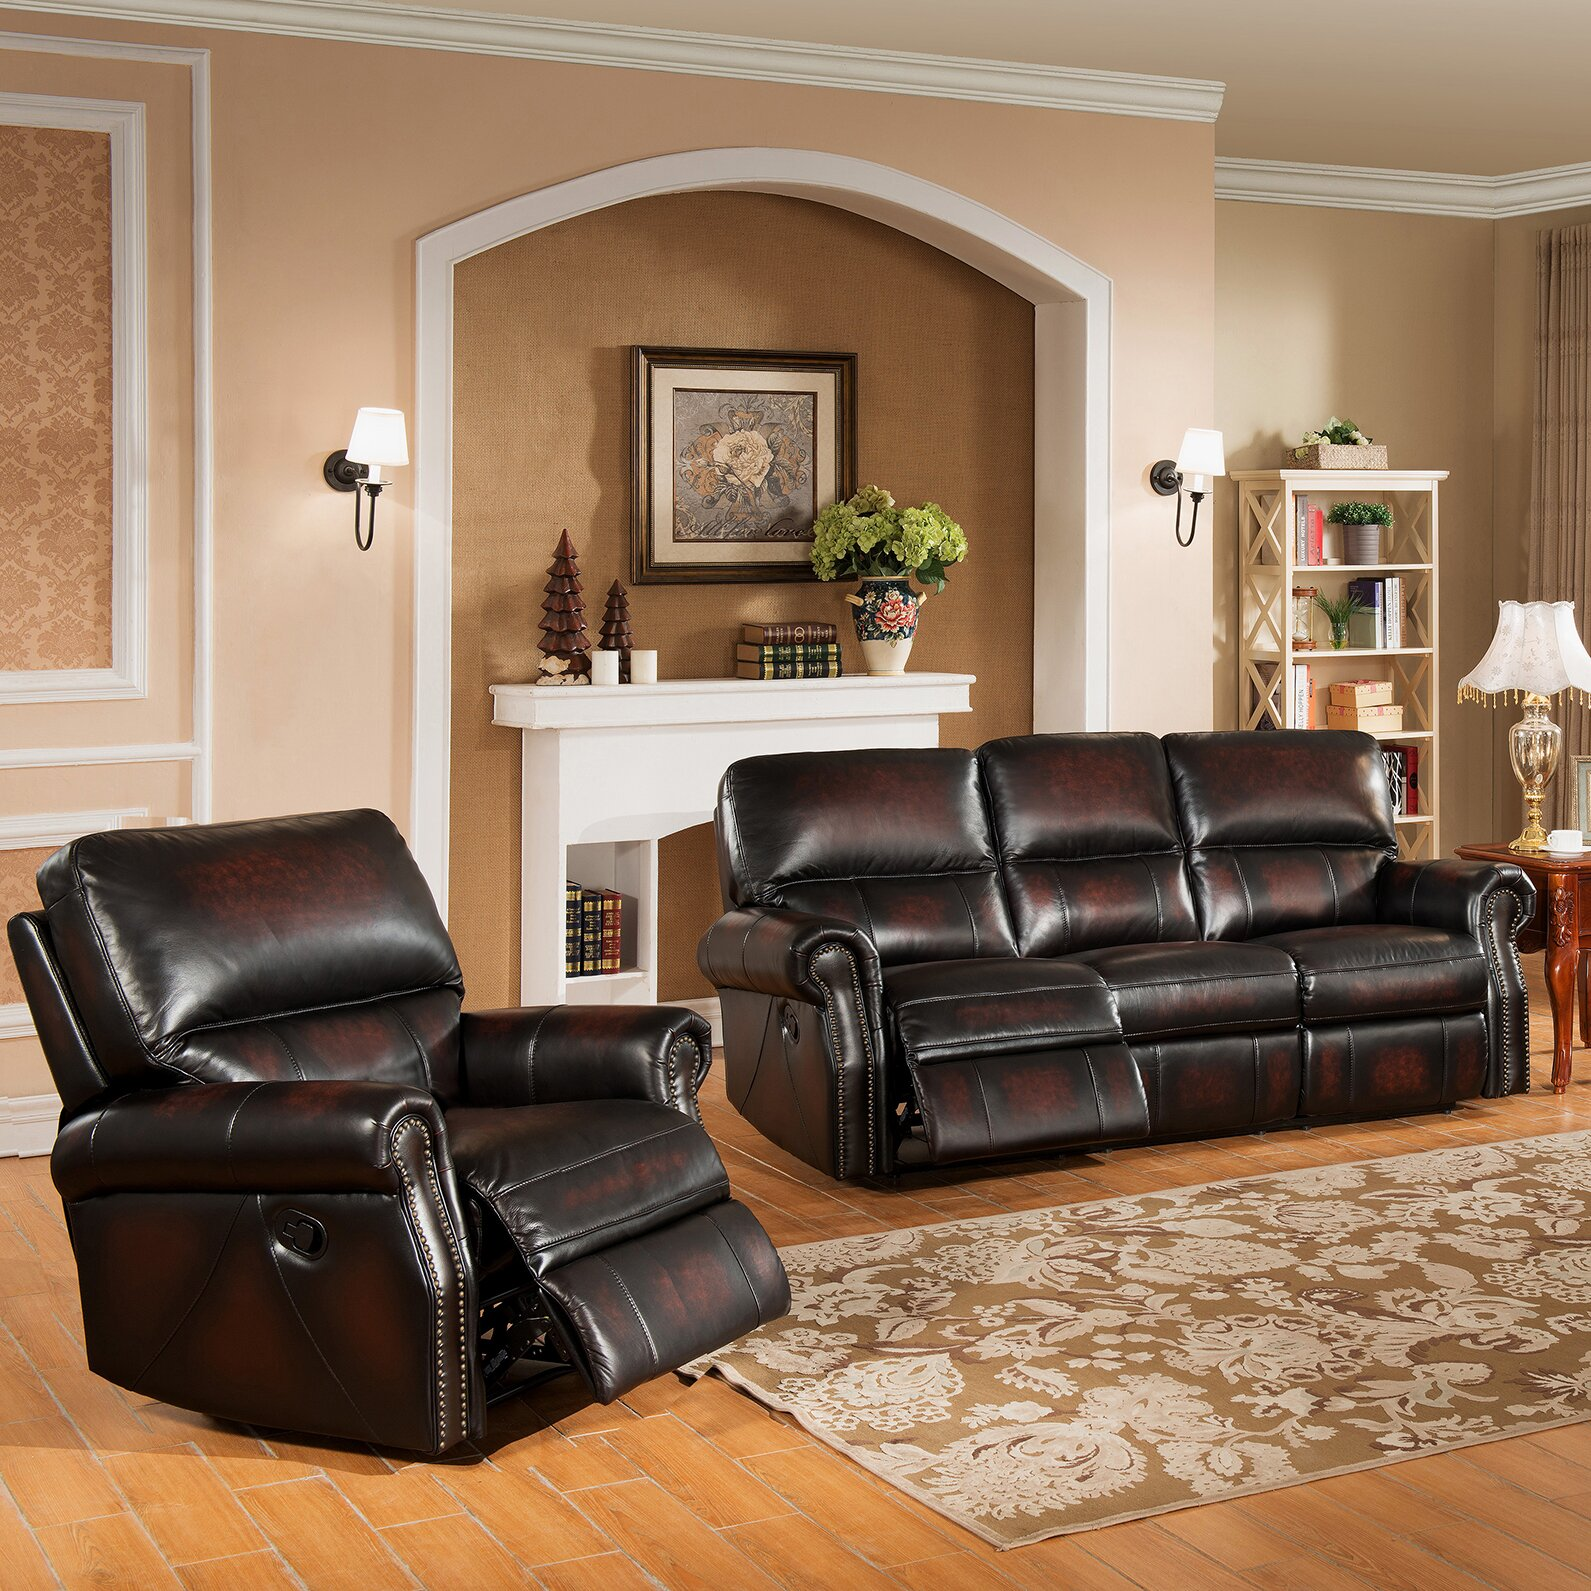 leather living room furniture sets amax nevada 2 leather living room set amp reviews 16653 | Amax Nevada 2 Piece Leather Living Room Set